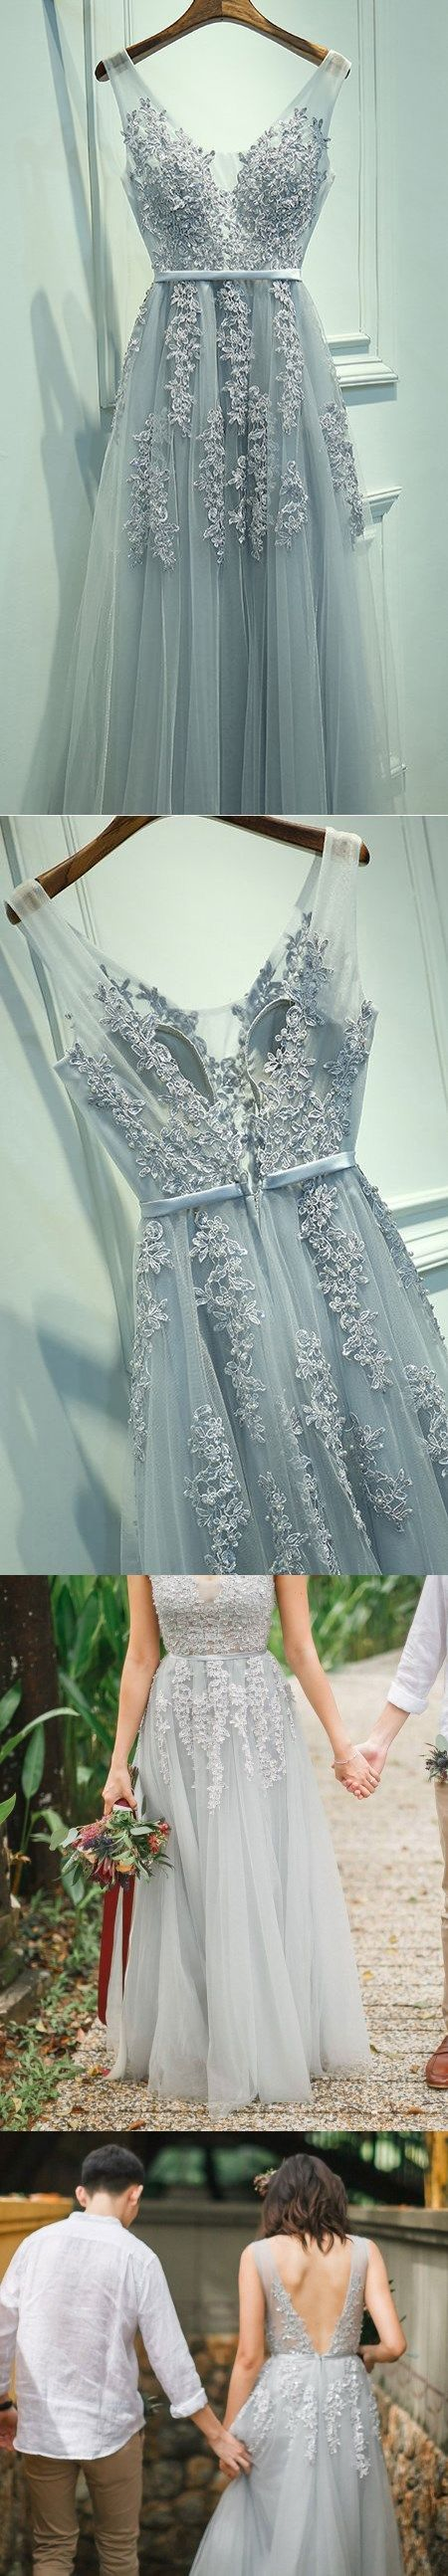 Lace appliqued prom dresses,prom dress 2017,formal dresses